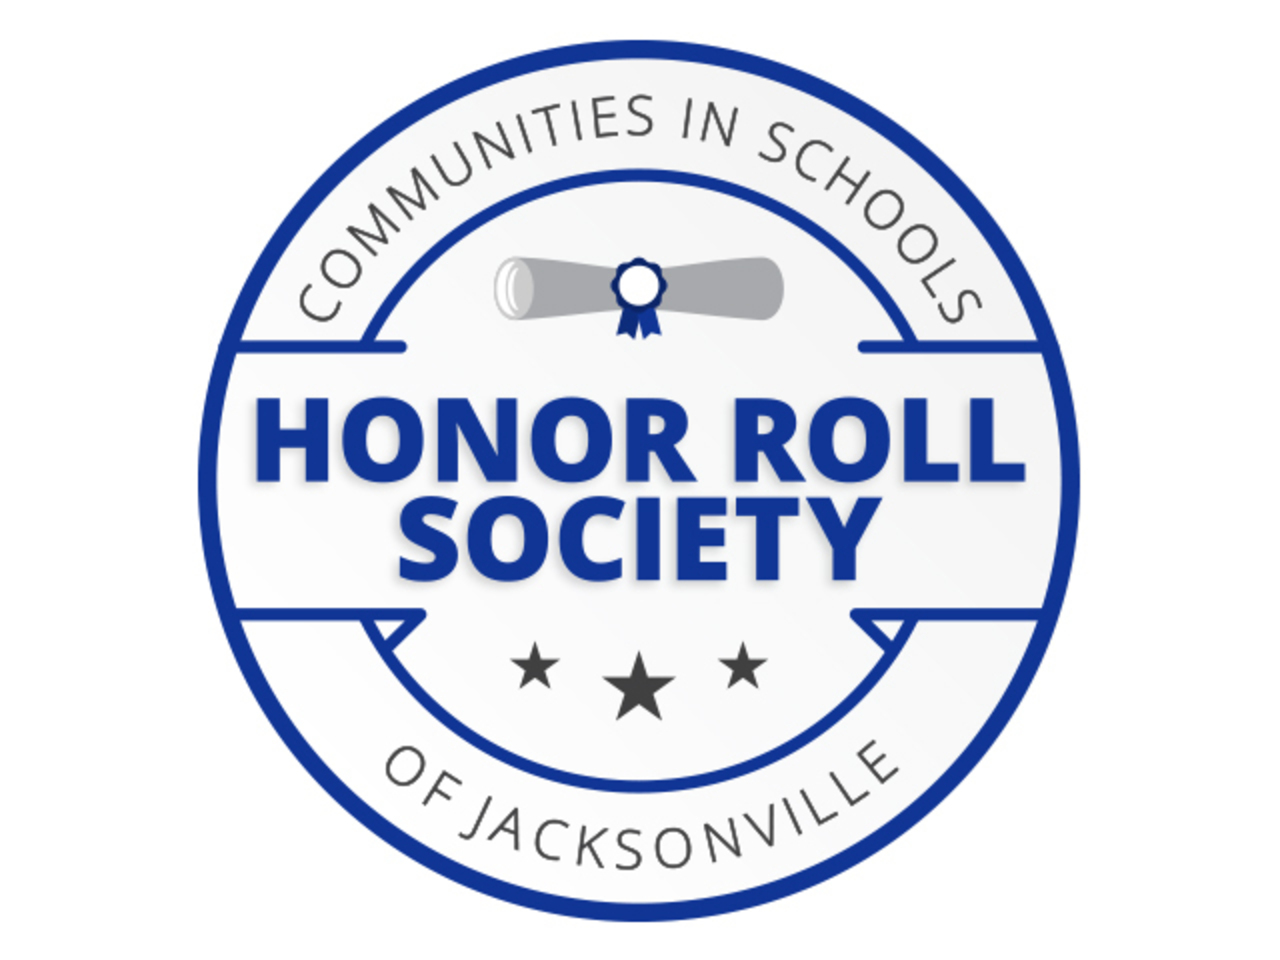 Become an Honor Roll Society Member today!